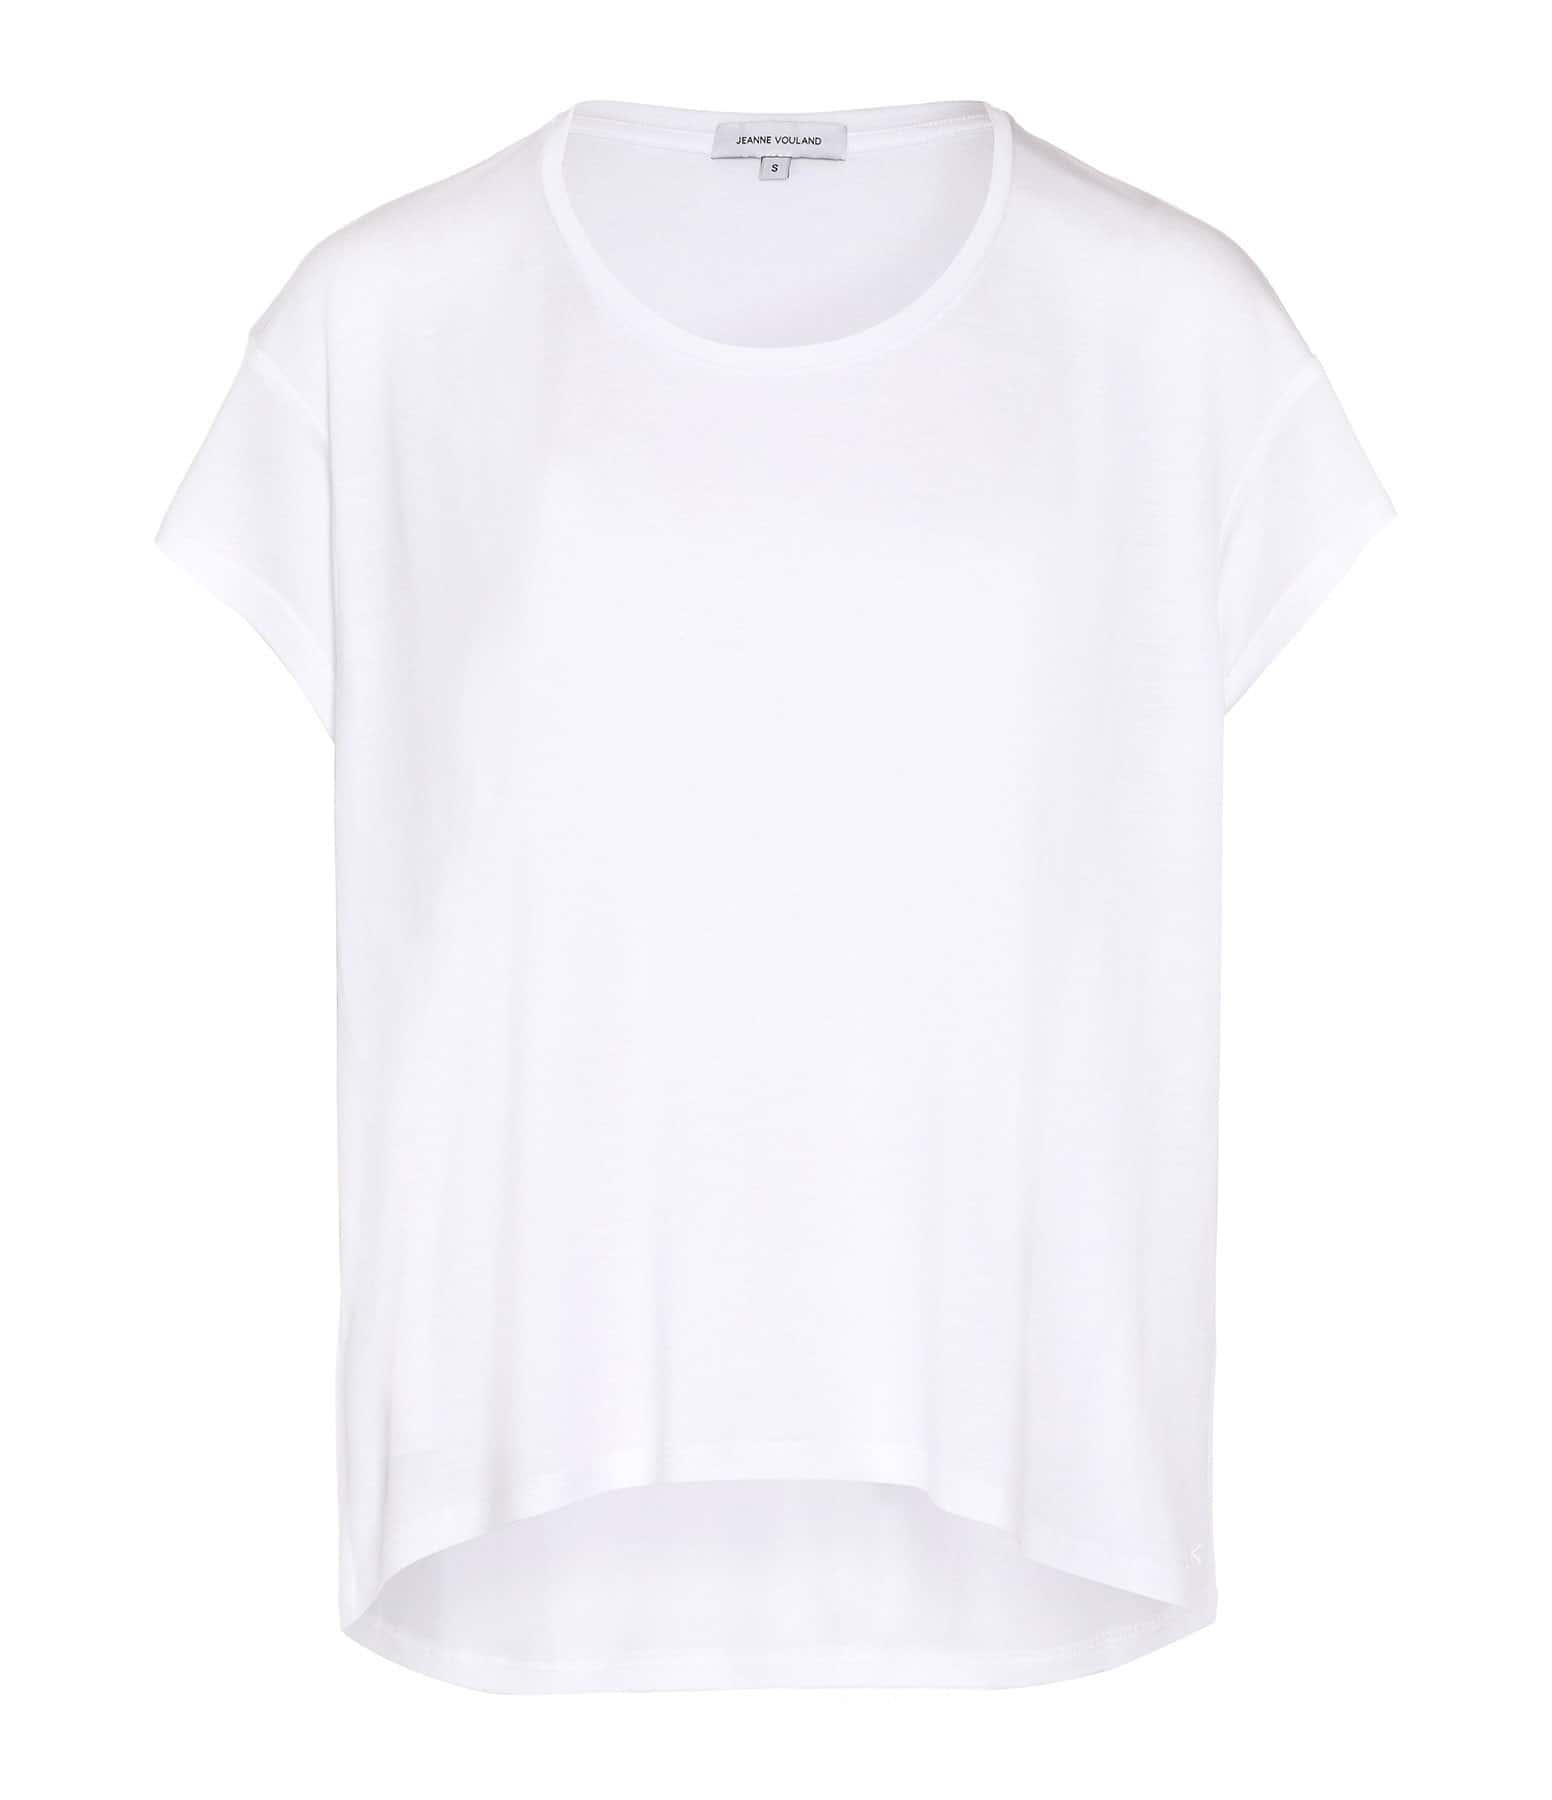 JEANNE VOULAND - Tee-shirt Bach Lyocell Blanc